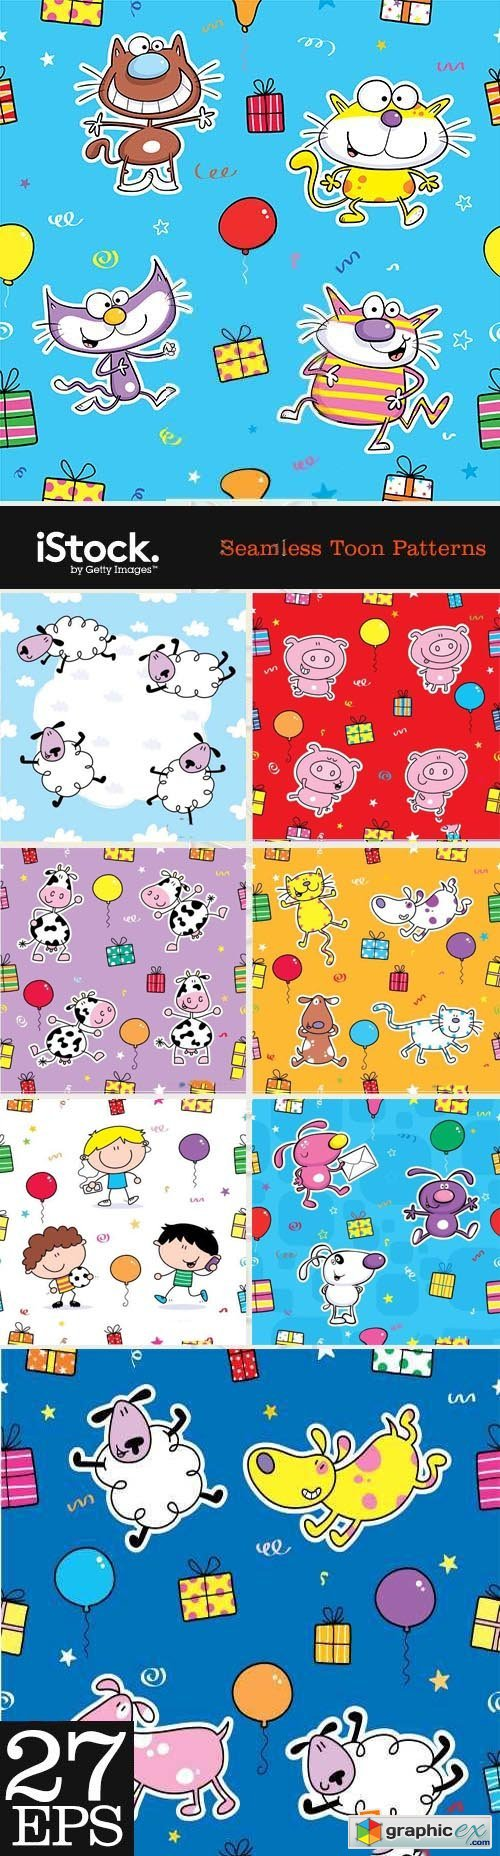 Seamless Toon Patterns 27xEPS